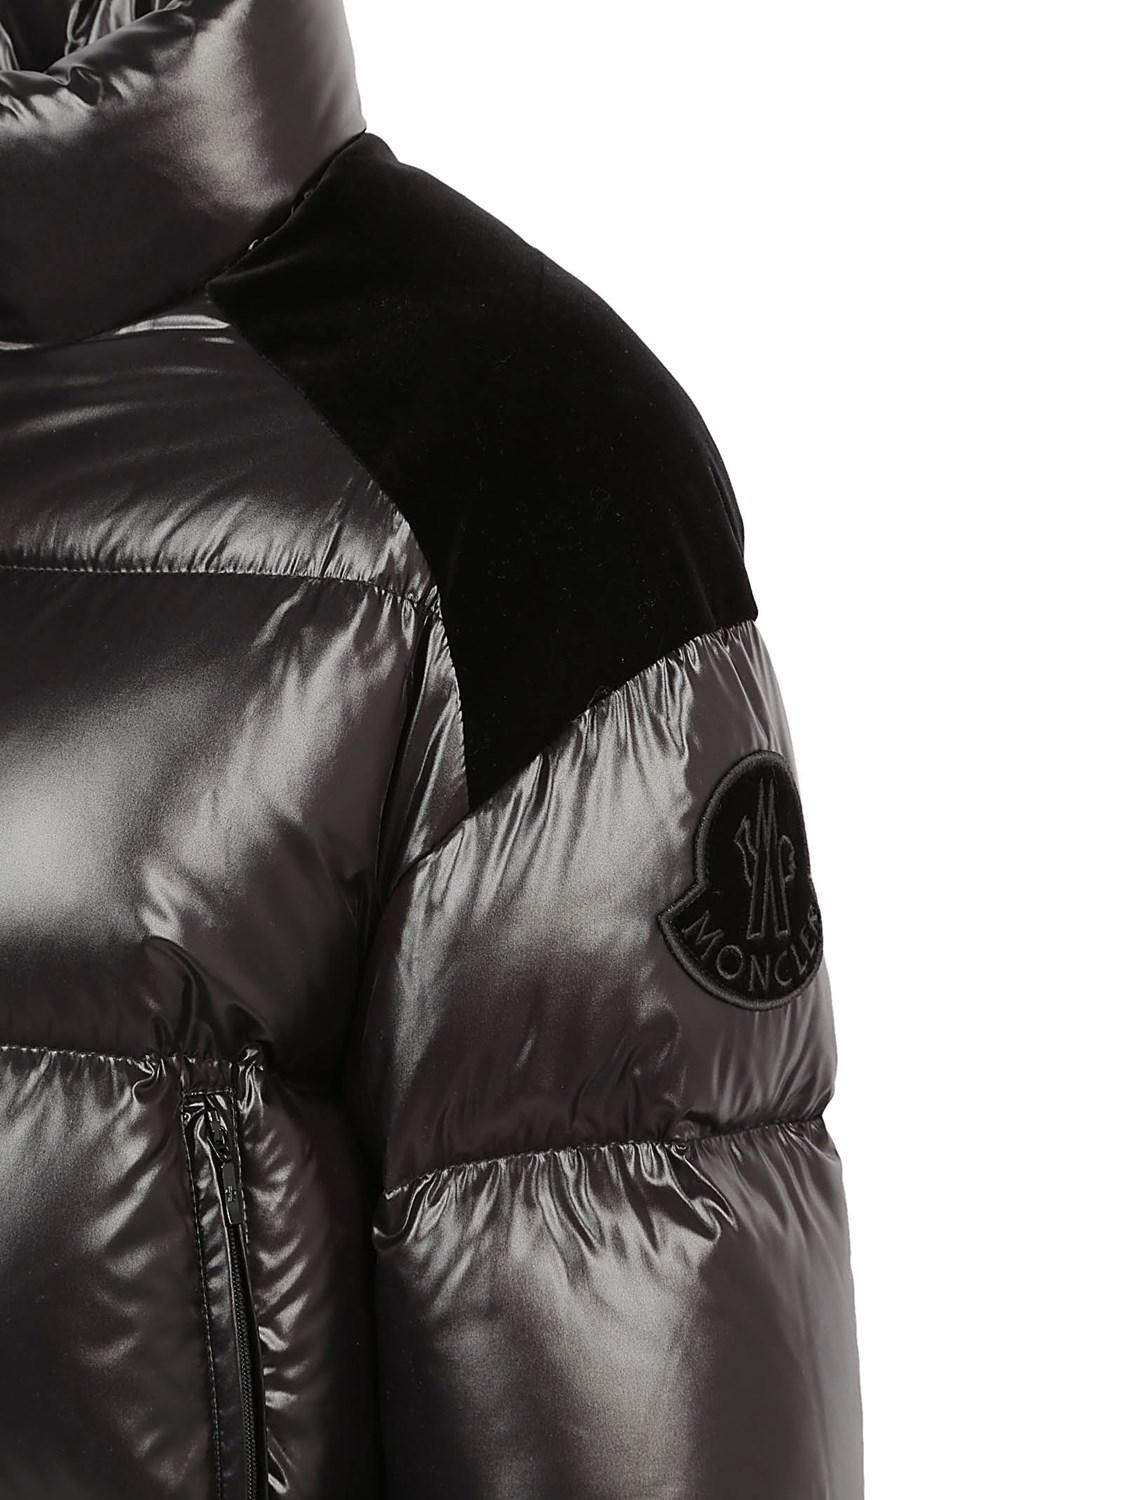 65c9ab52321 Moncler Chouette Down Jacket in Black - Lyst